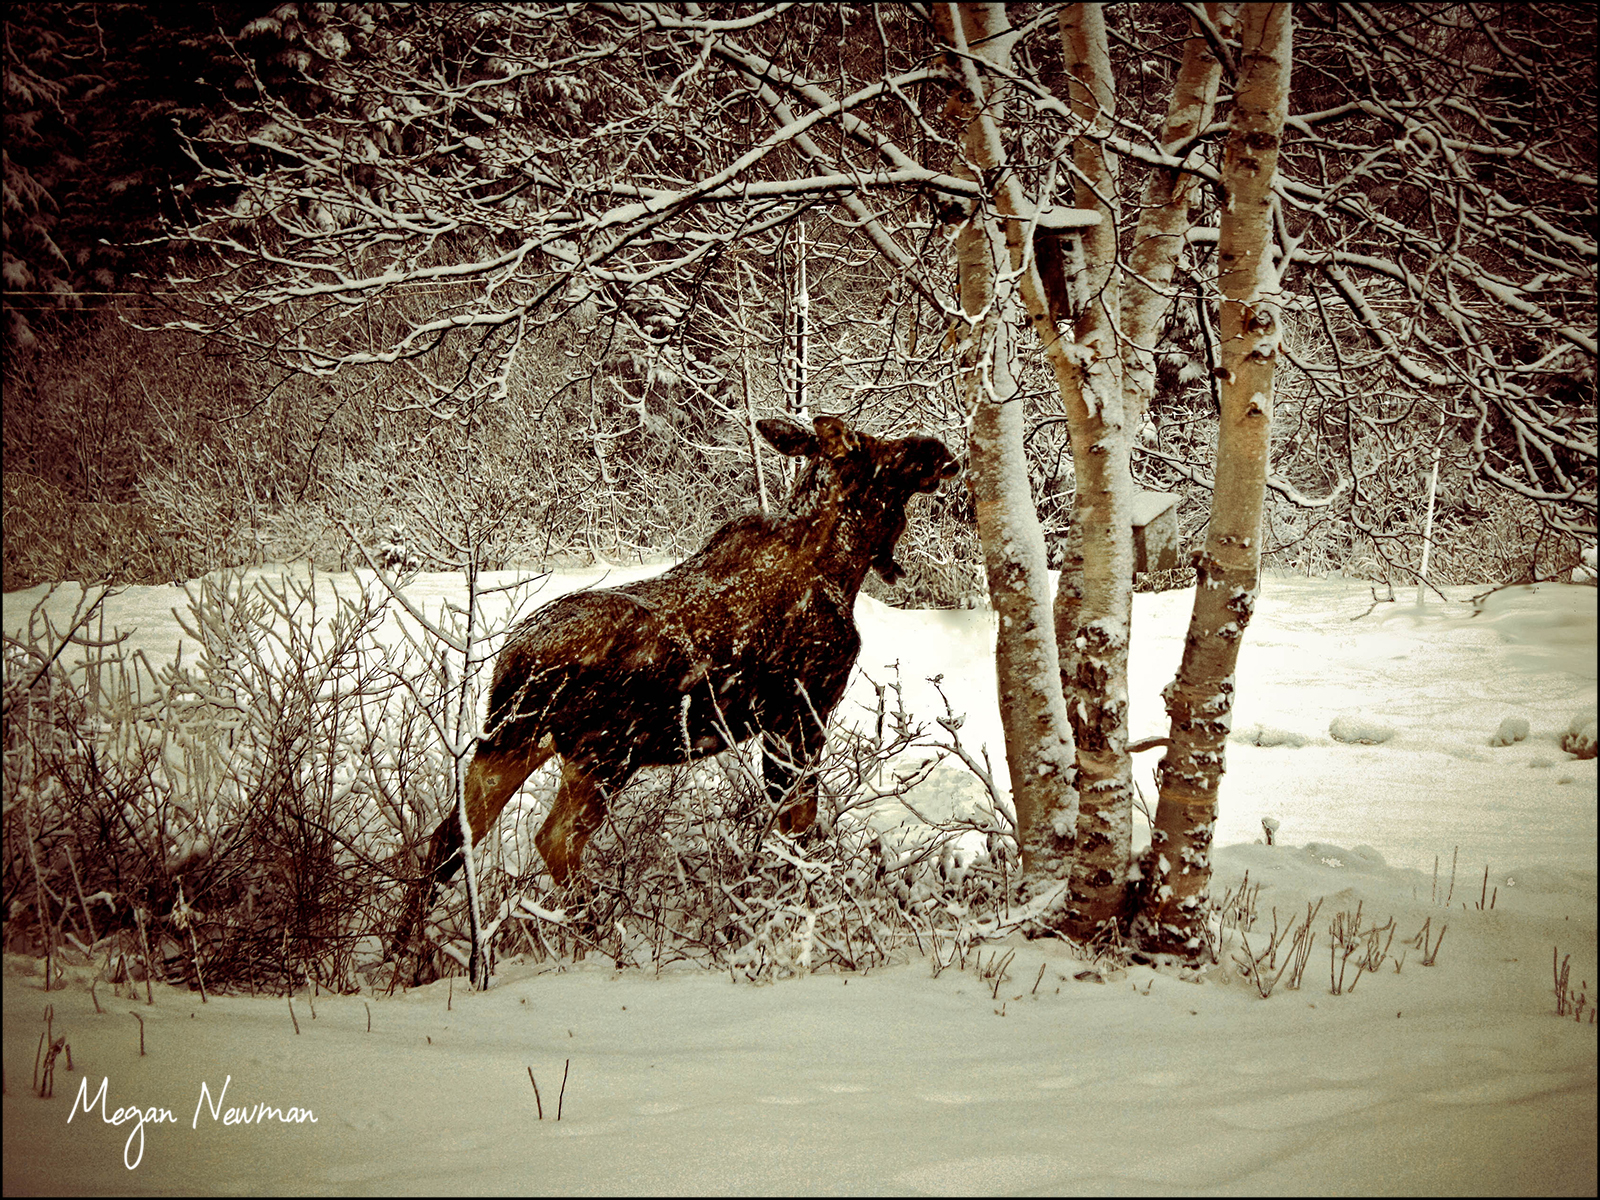 Moose in winter Newfoundland Megan Newmann ©